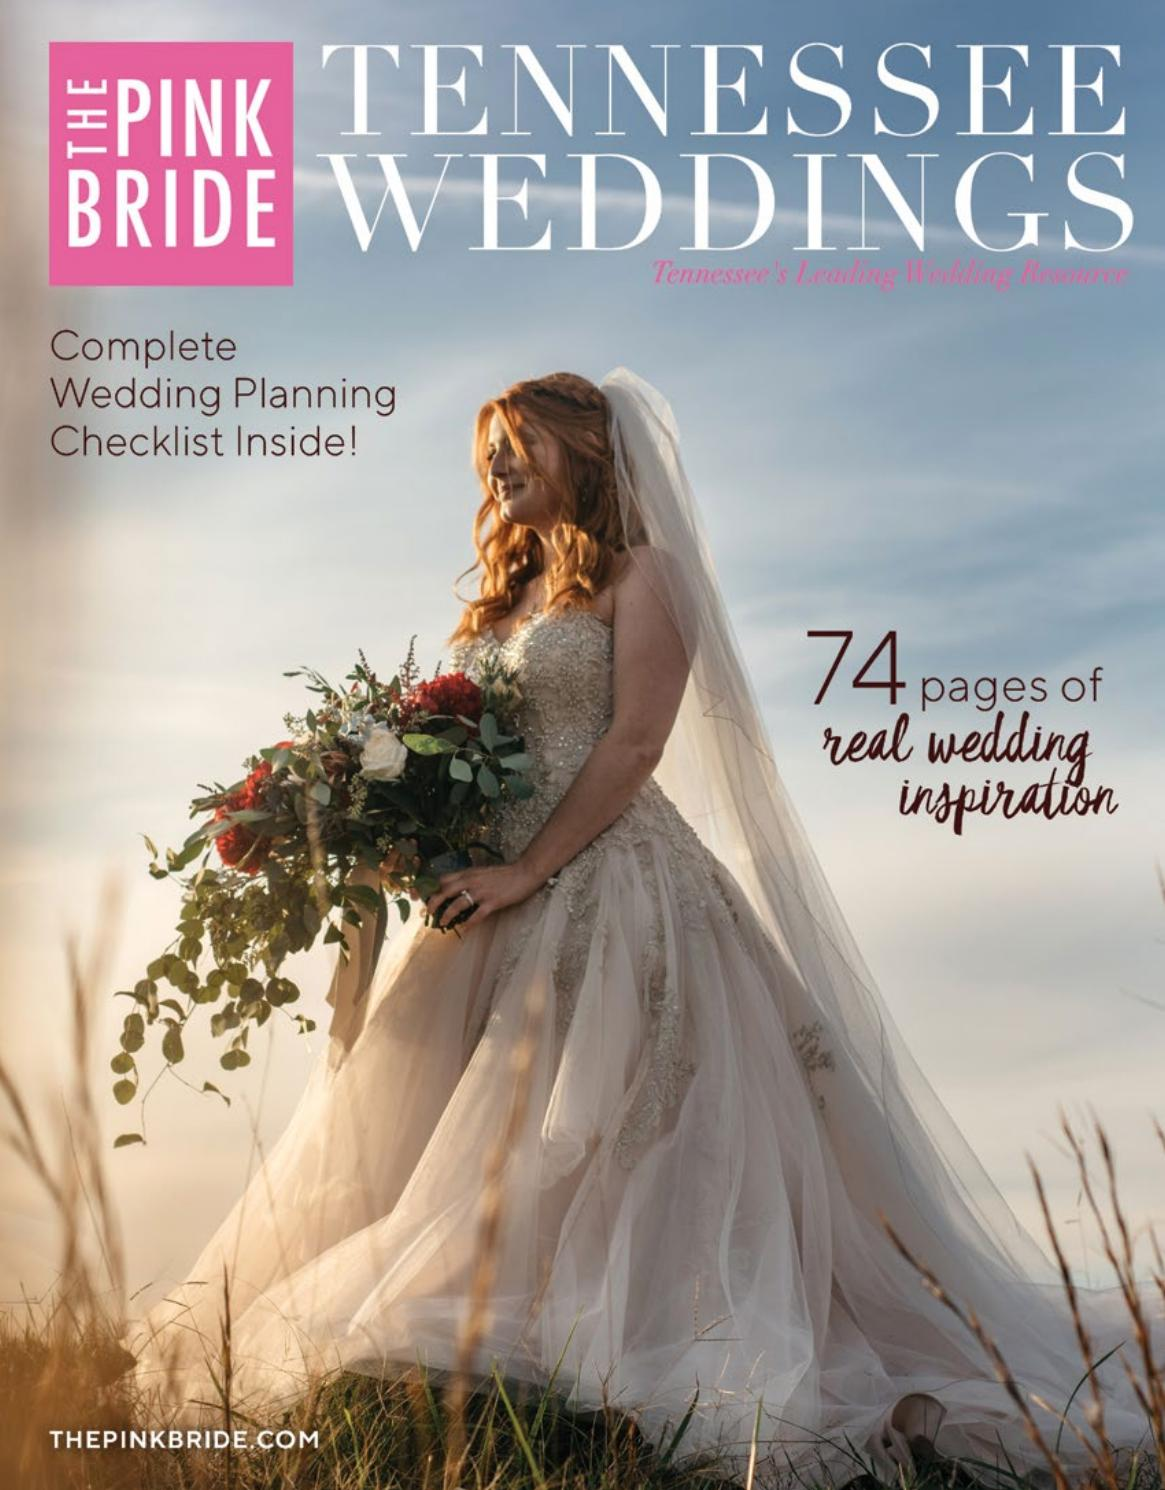 f14d255aad1 The Pink Bride TN Weddings Spring 2019 by The Pink Bride - issuu